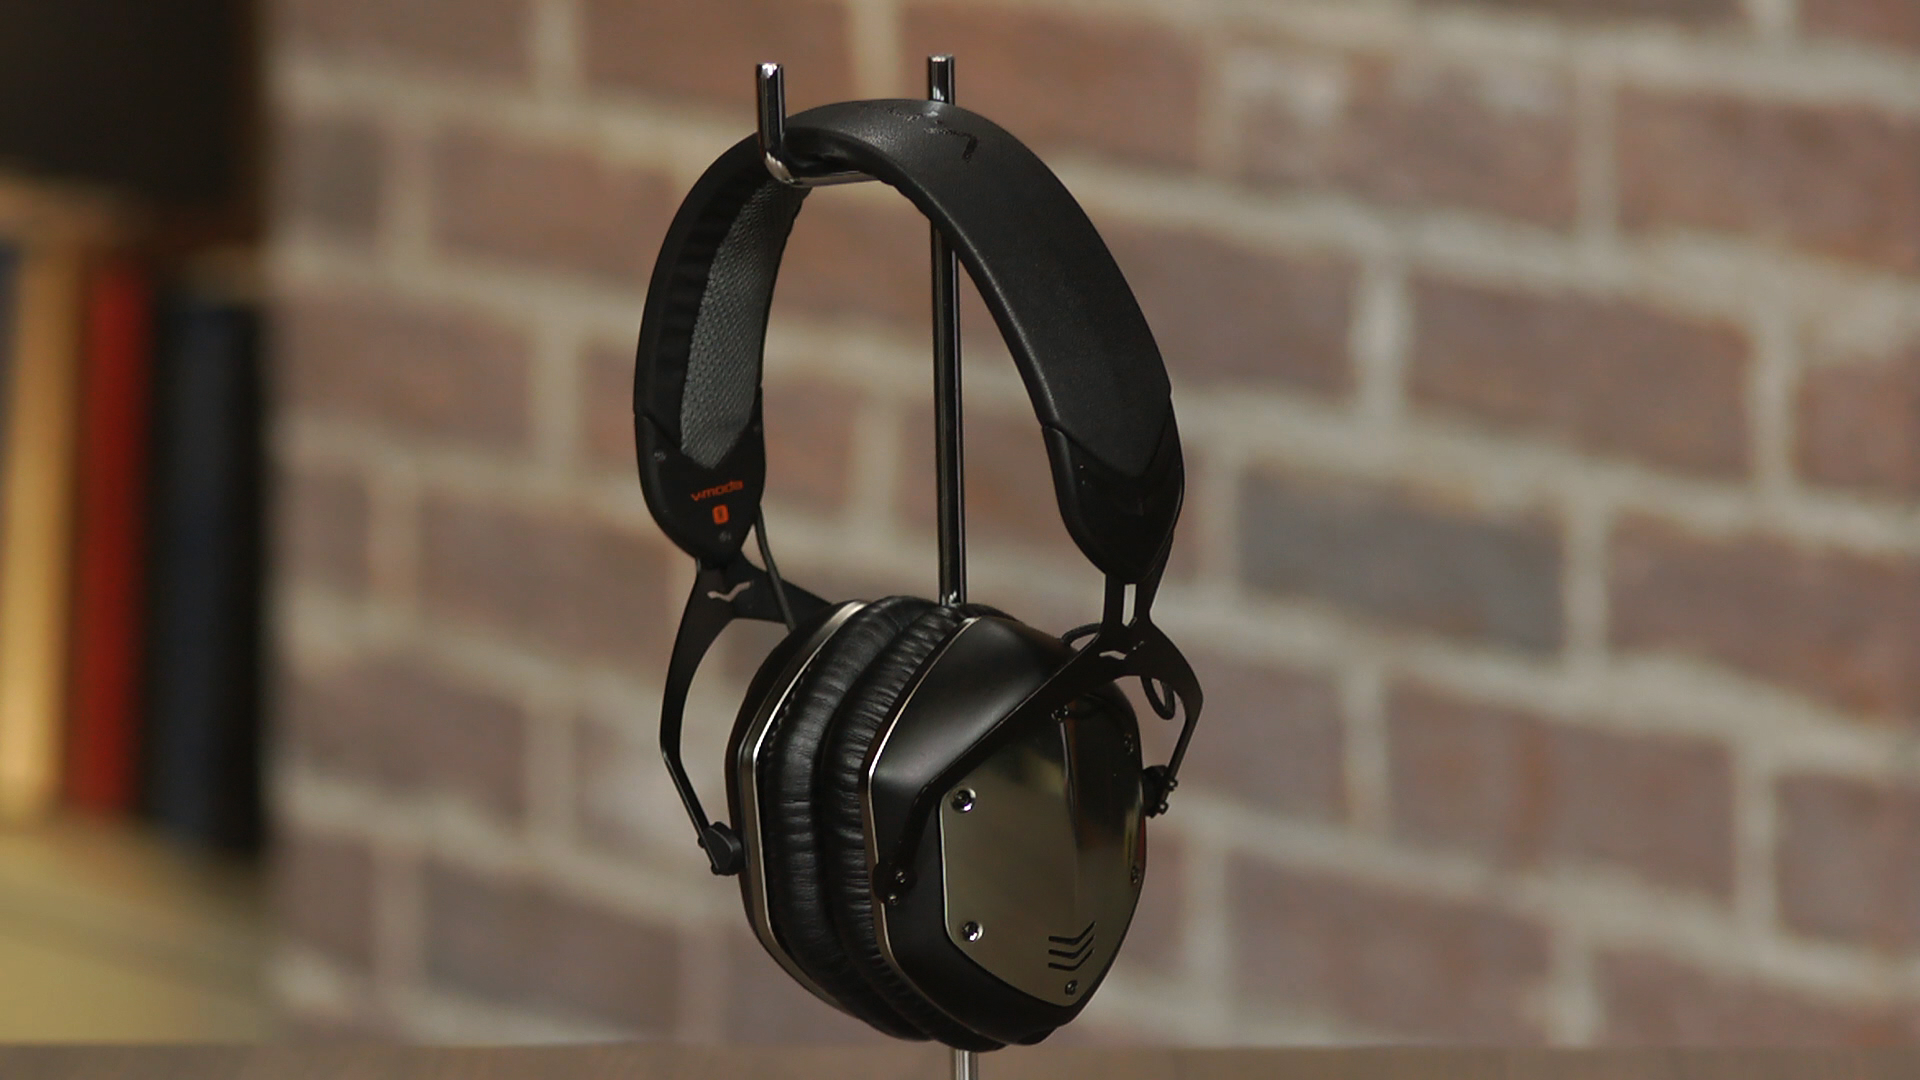 Video: V-Moda's Crossfade Wireless headphone takes aim at Apple's Beats Studio Wireless